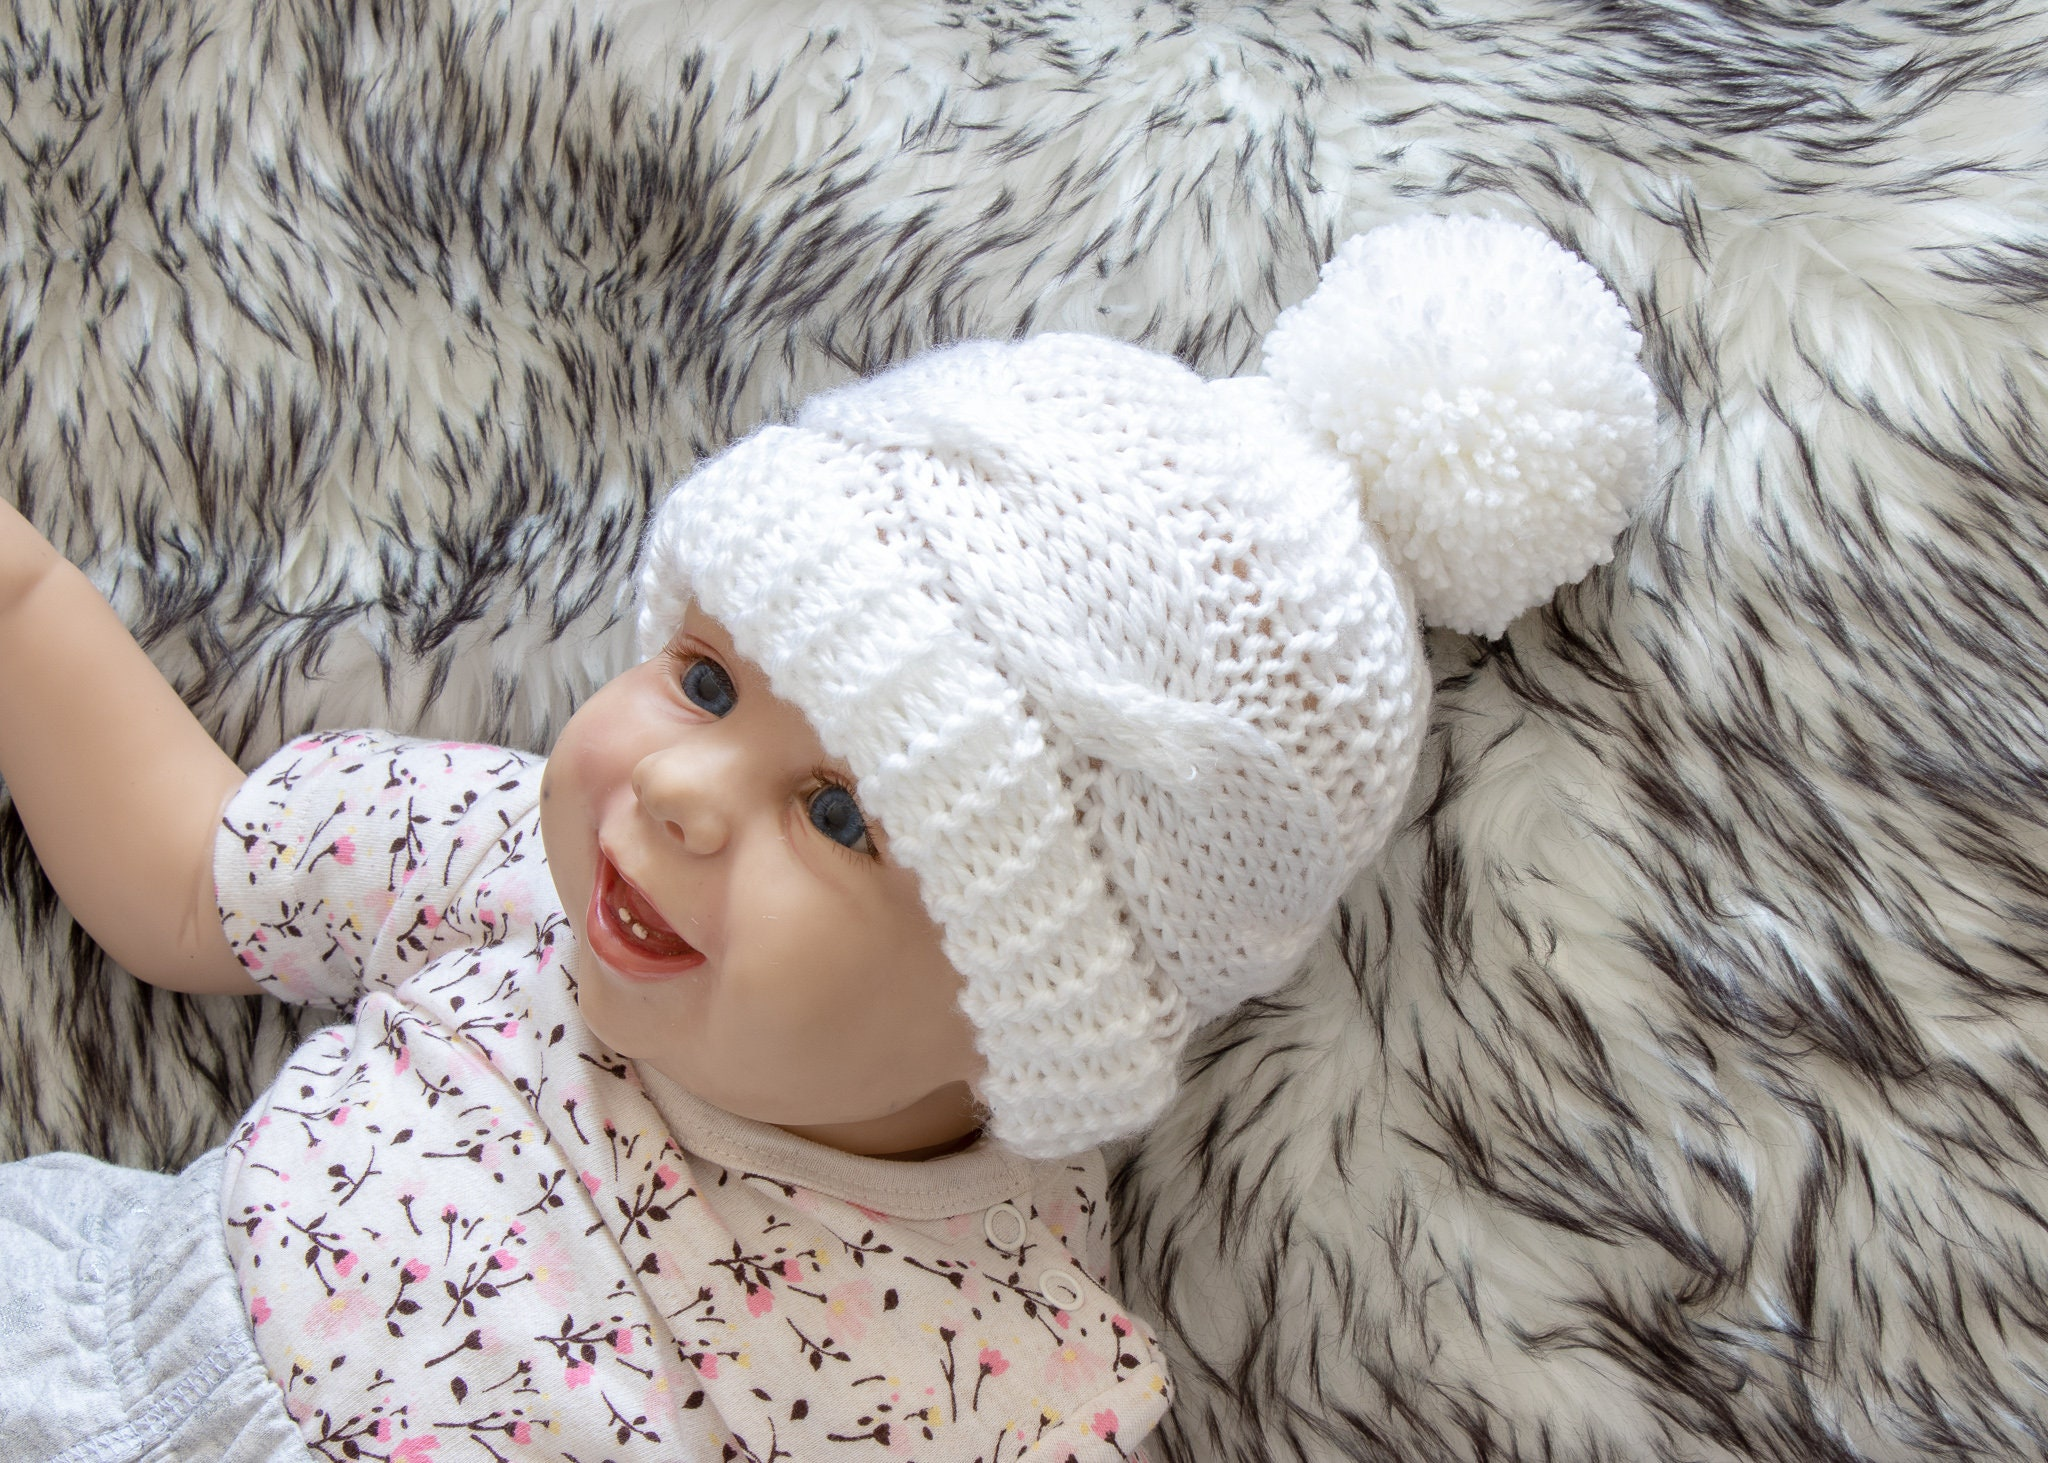 451d3ca555b White baby hat - Baby Hand knitted hat - Cable knit hat - Baby winter hat